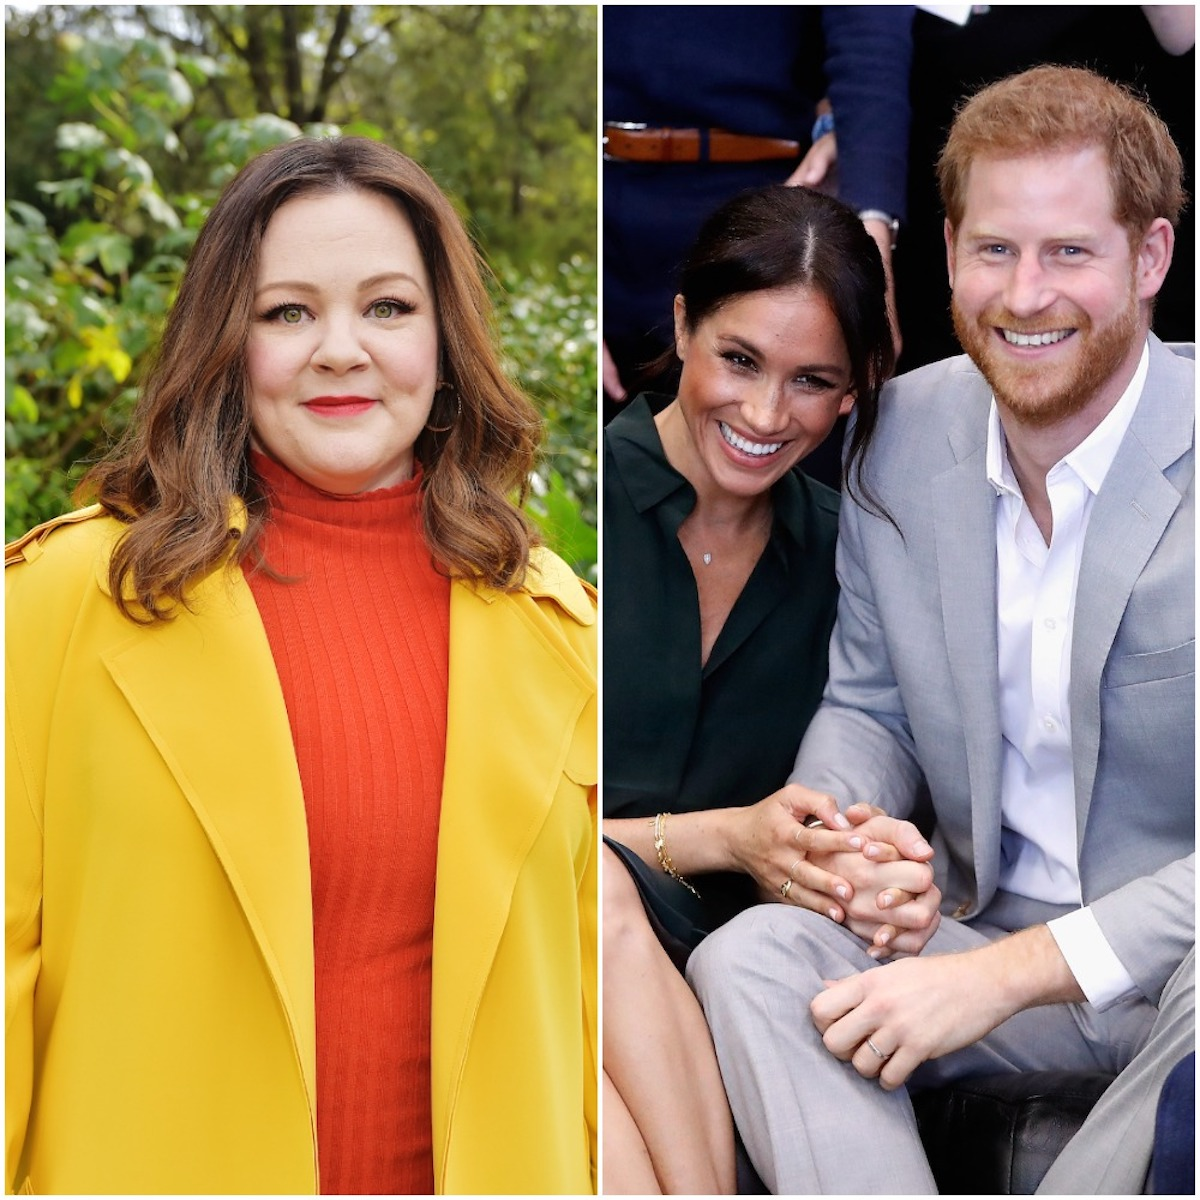 Melissa McCarthy smiles in a red and yellow outfit in 2019; Meghan Markle and Prince Harry smile and hold hands in 2018